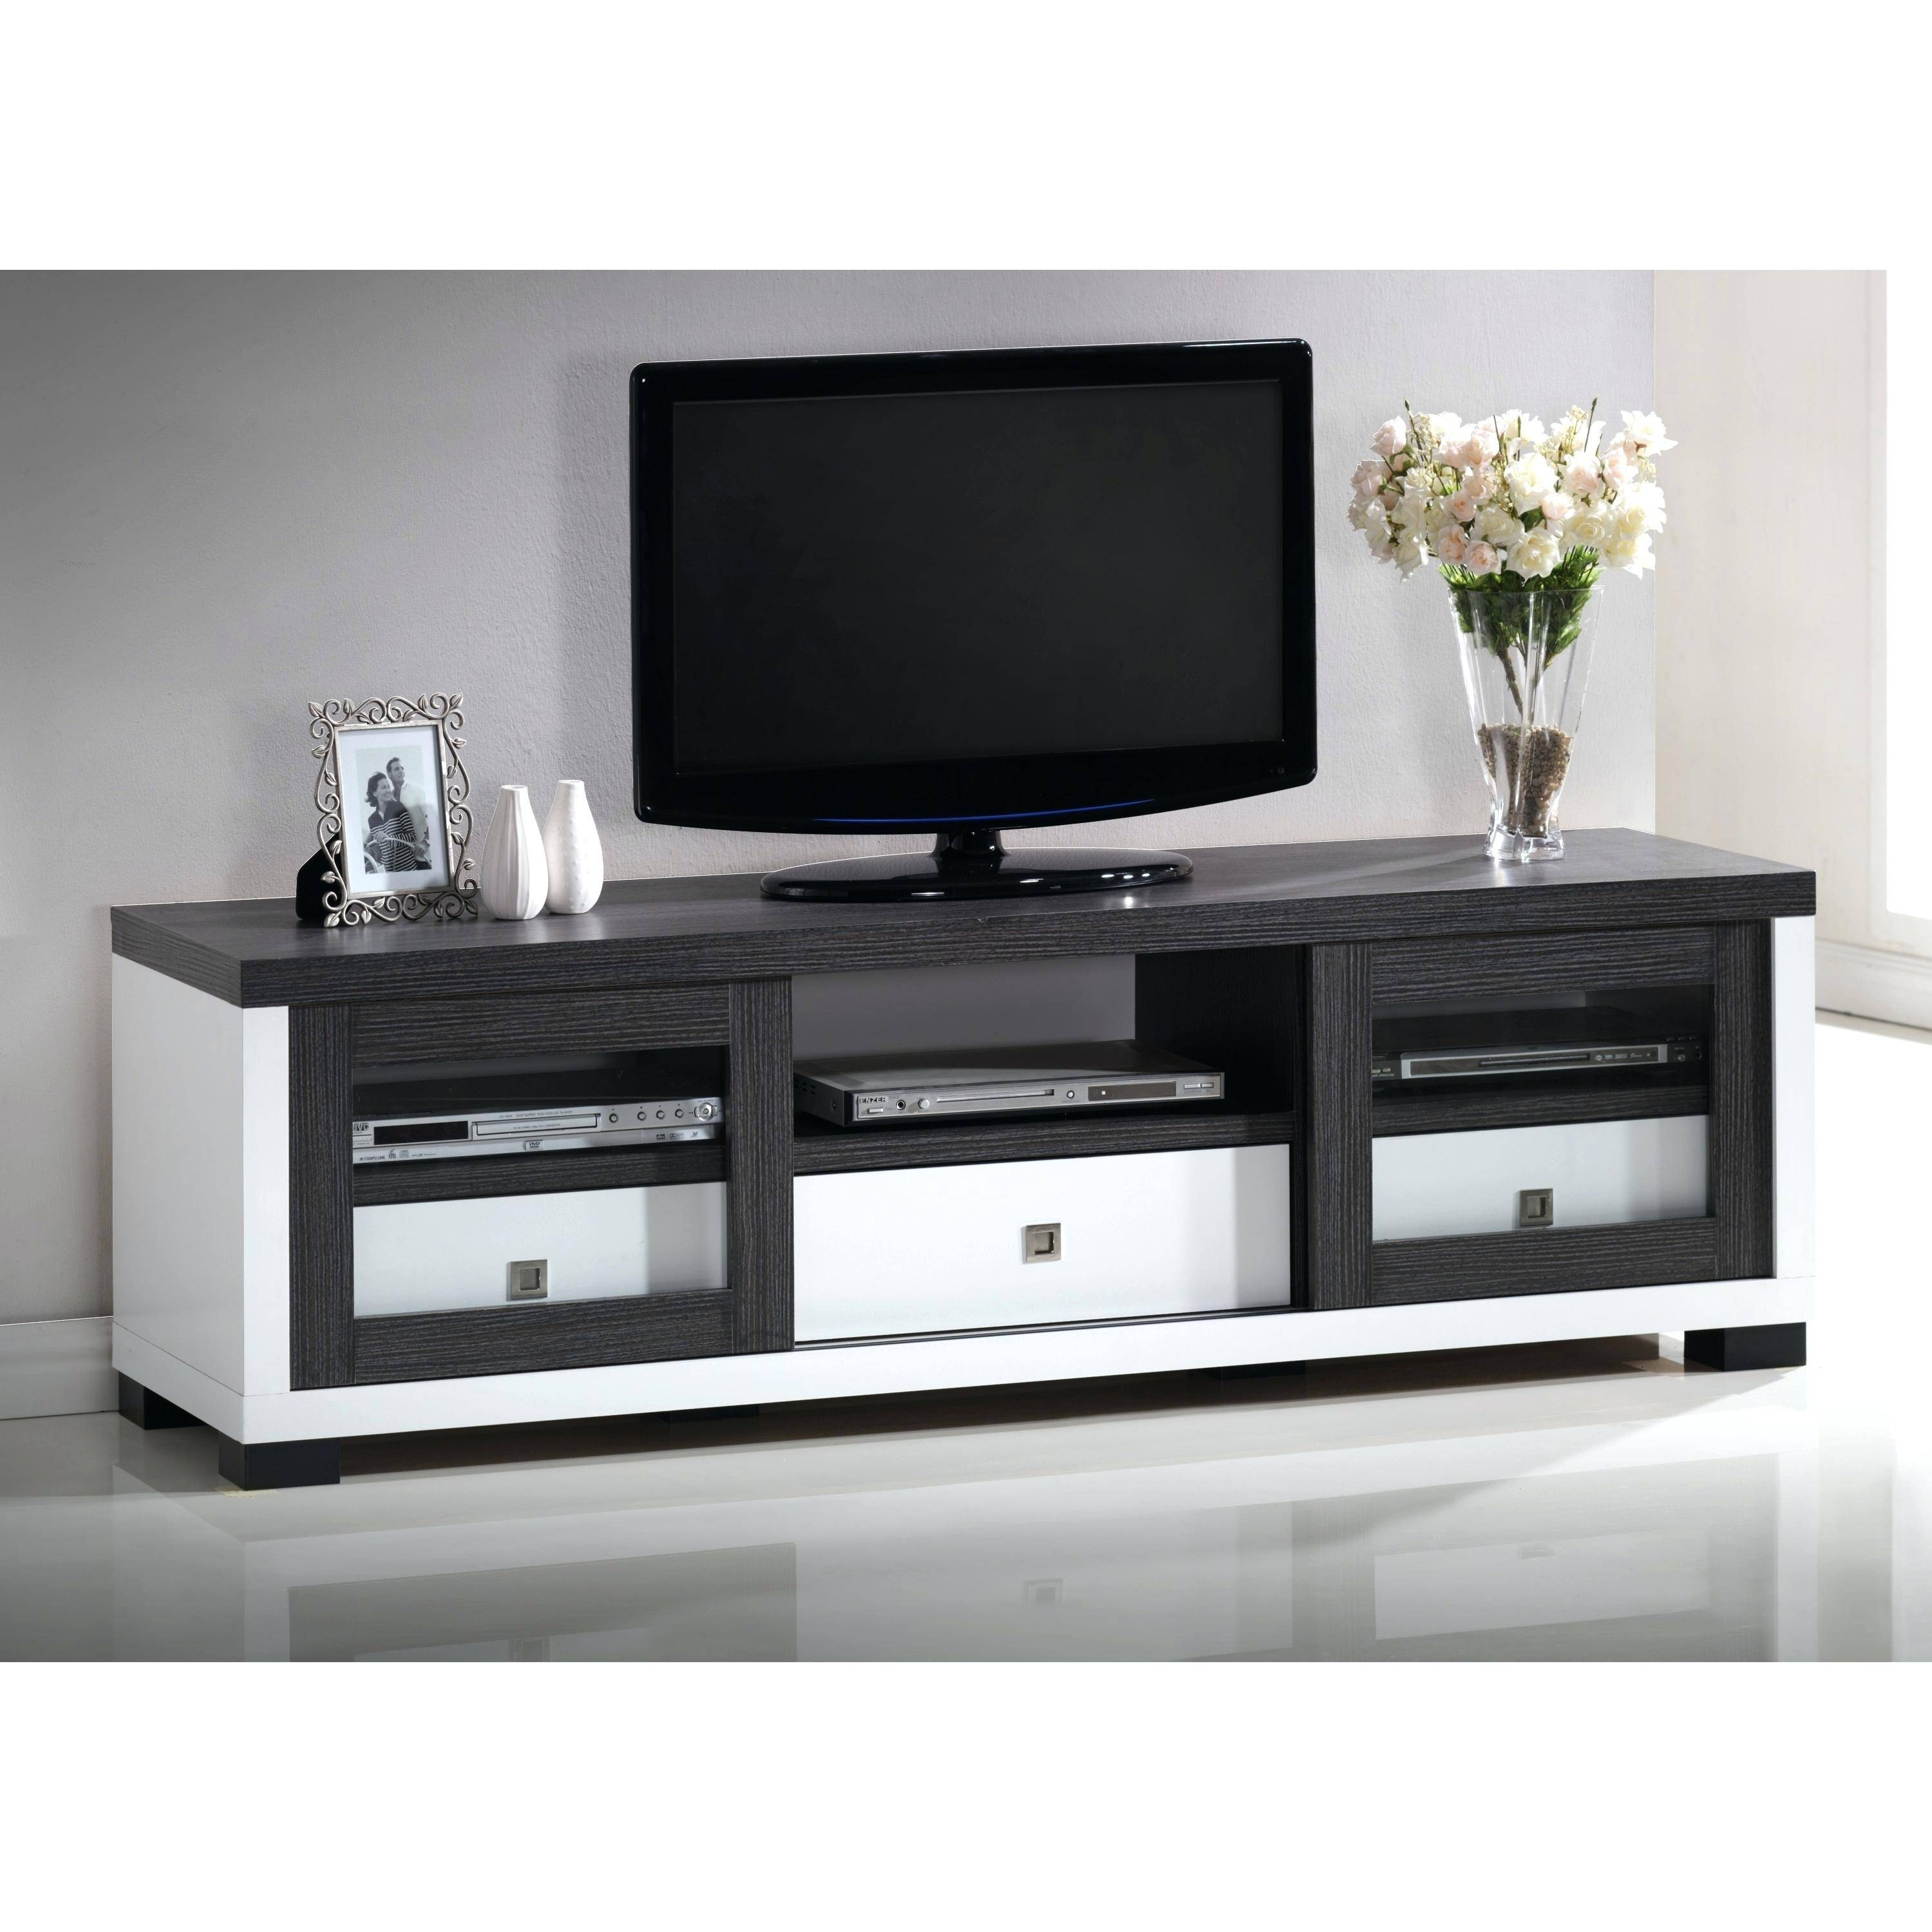 Tv Stand : Appealing Mirrored Buffet Mirrored Vanity Table In Sideboards And Tv Stands (View 14 of 15)